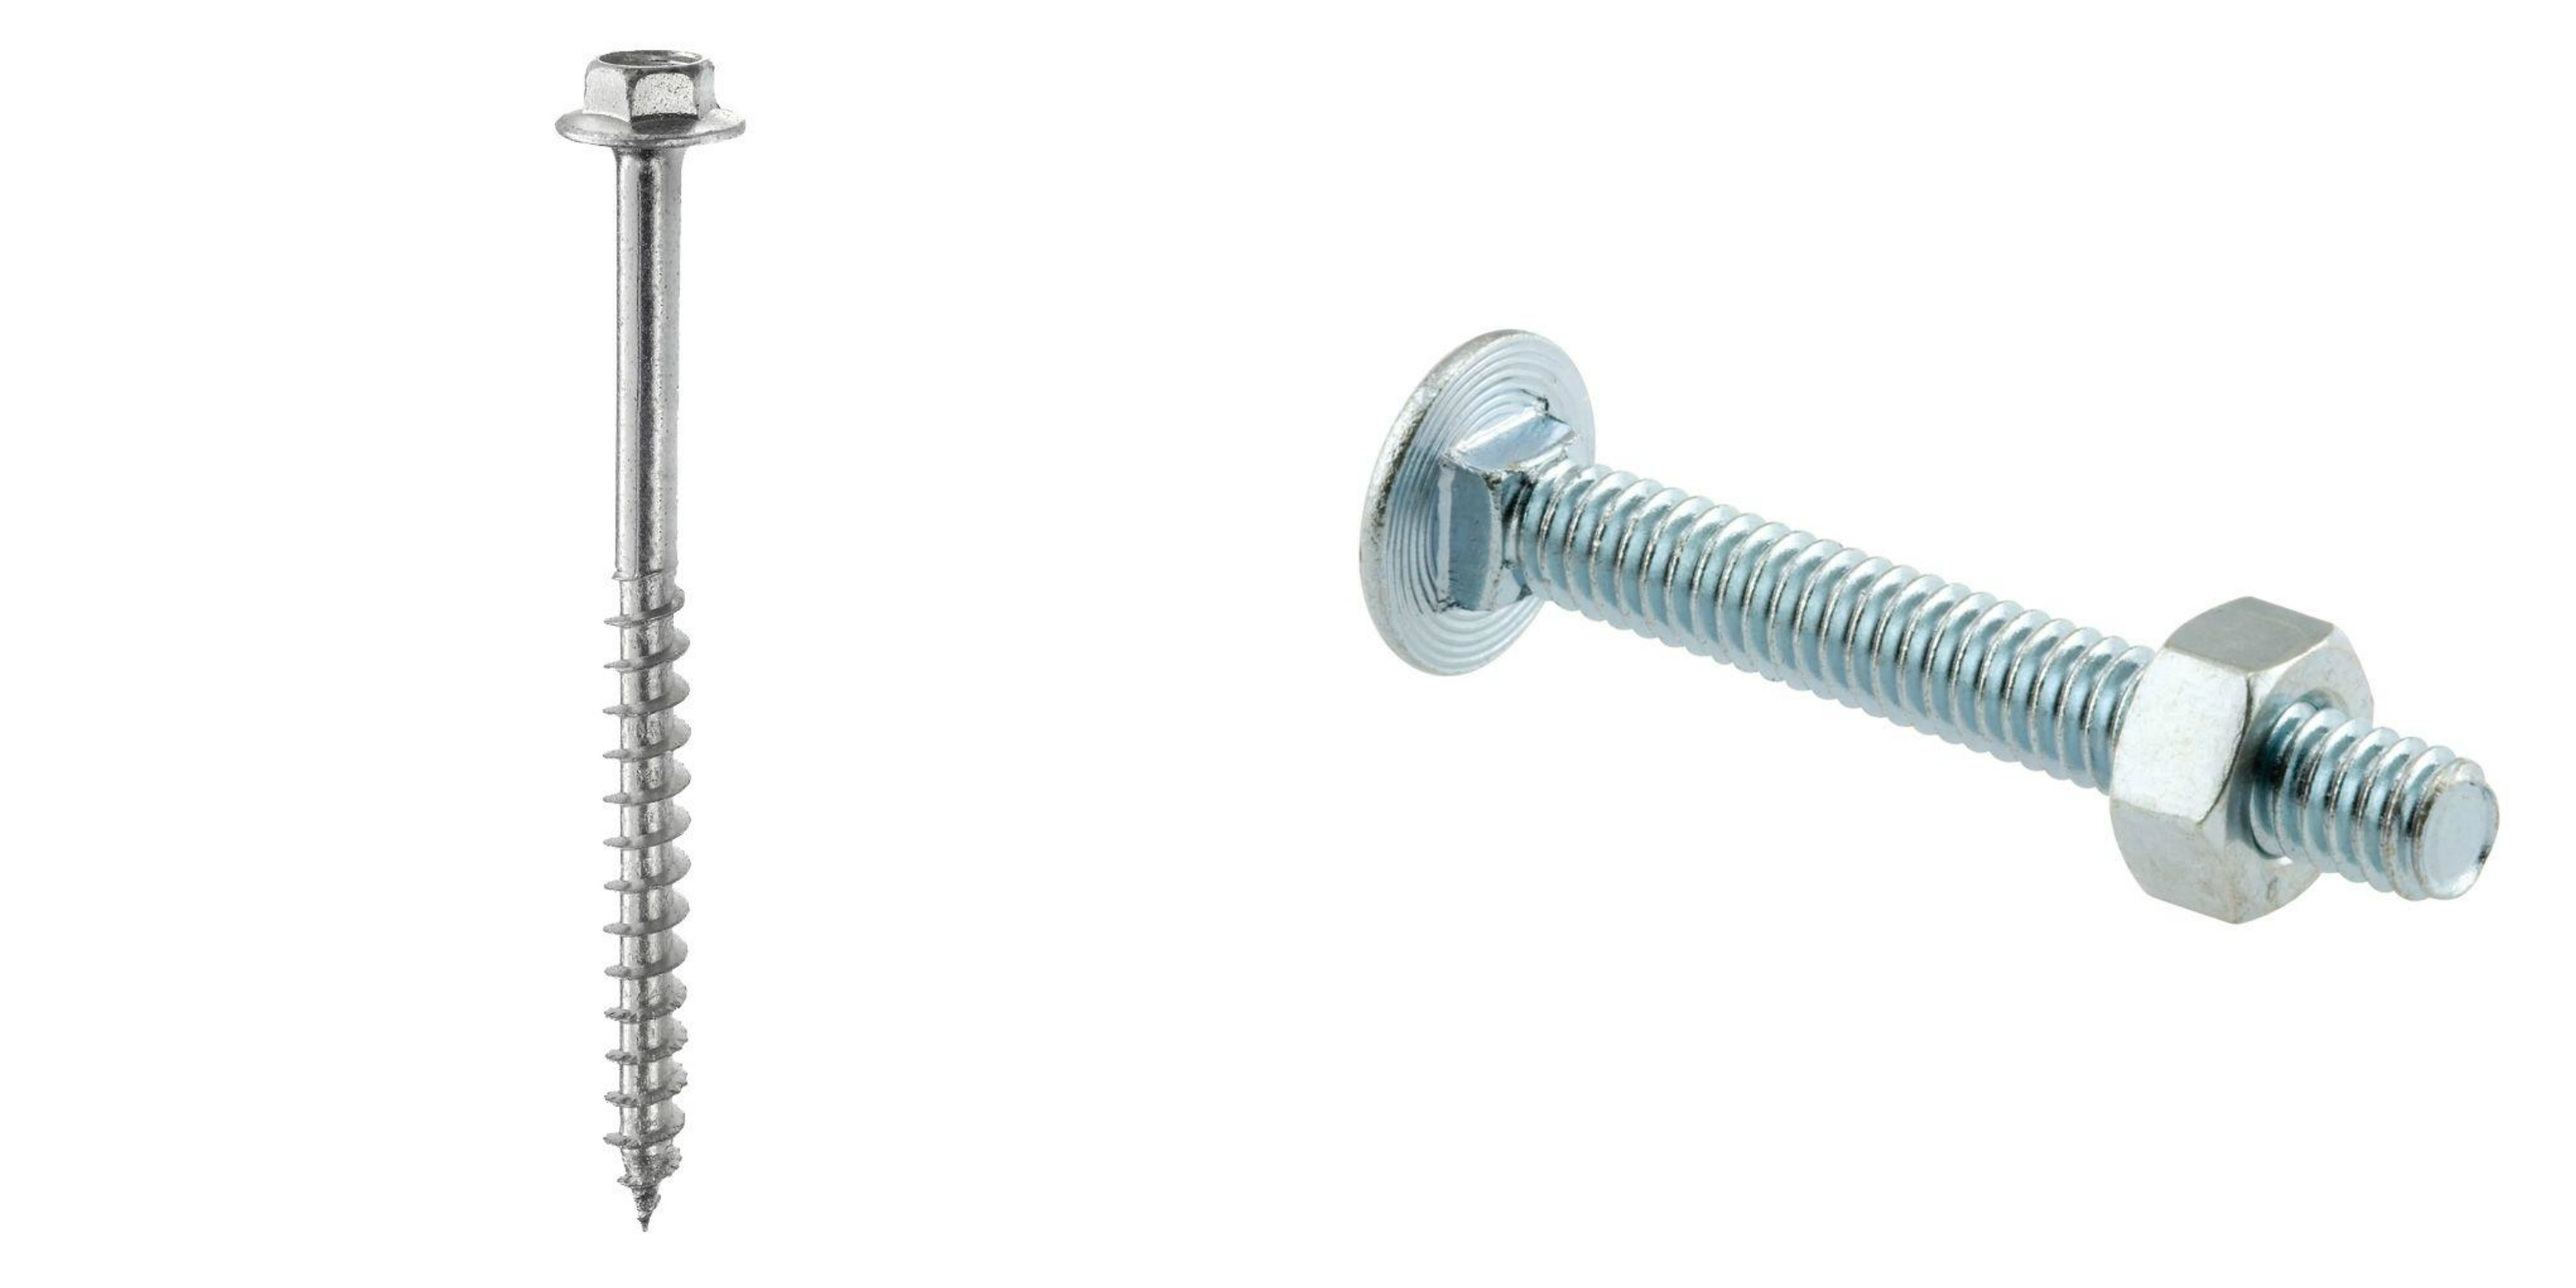 Lag screw and carriage bolt